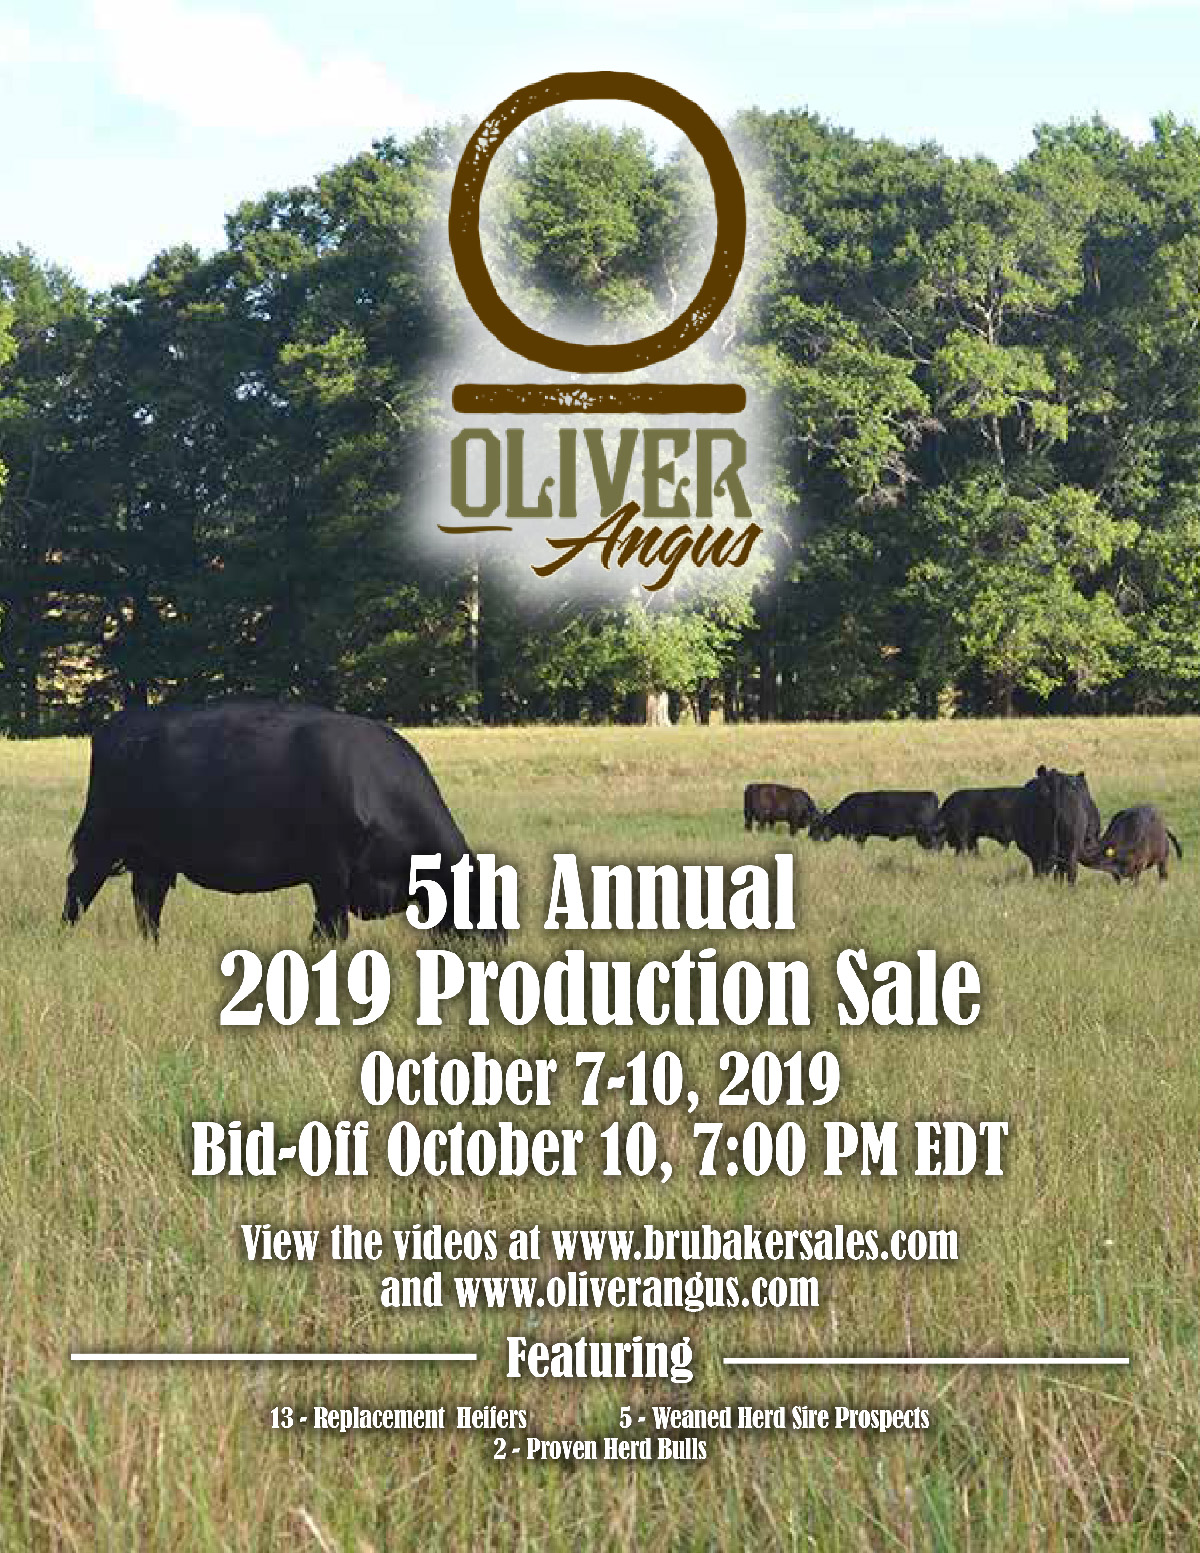 5th Annual Oliver Angus 2019 Production Sale